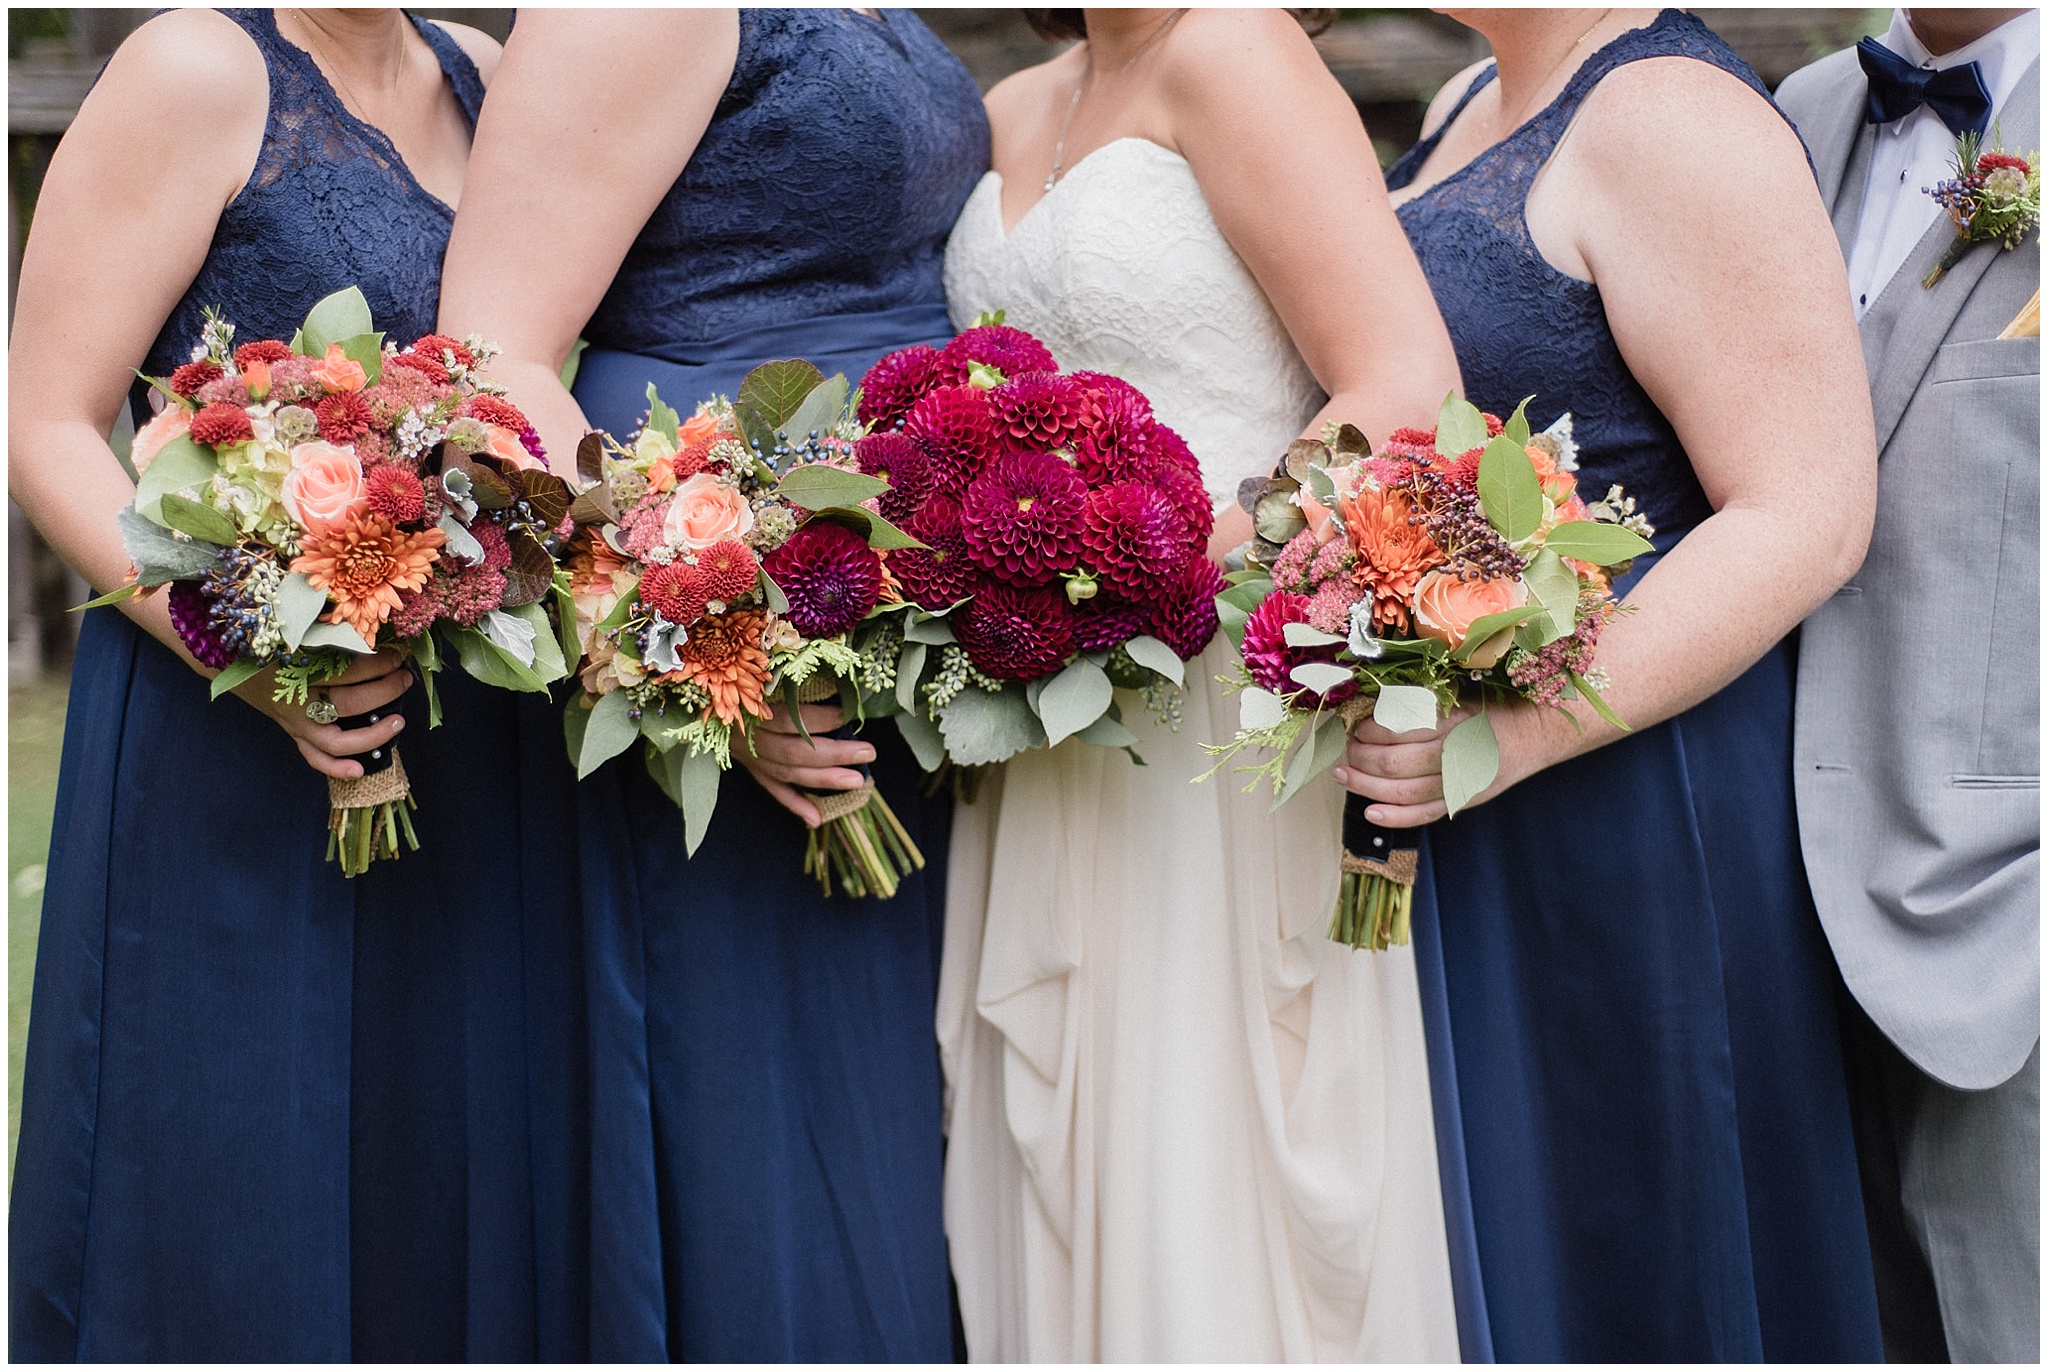 LazyDayz Bed & Breakfast wedding featuring navy blue bridesmaids dresses with orange and red florals by Jenn Kavanagh Photography